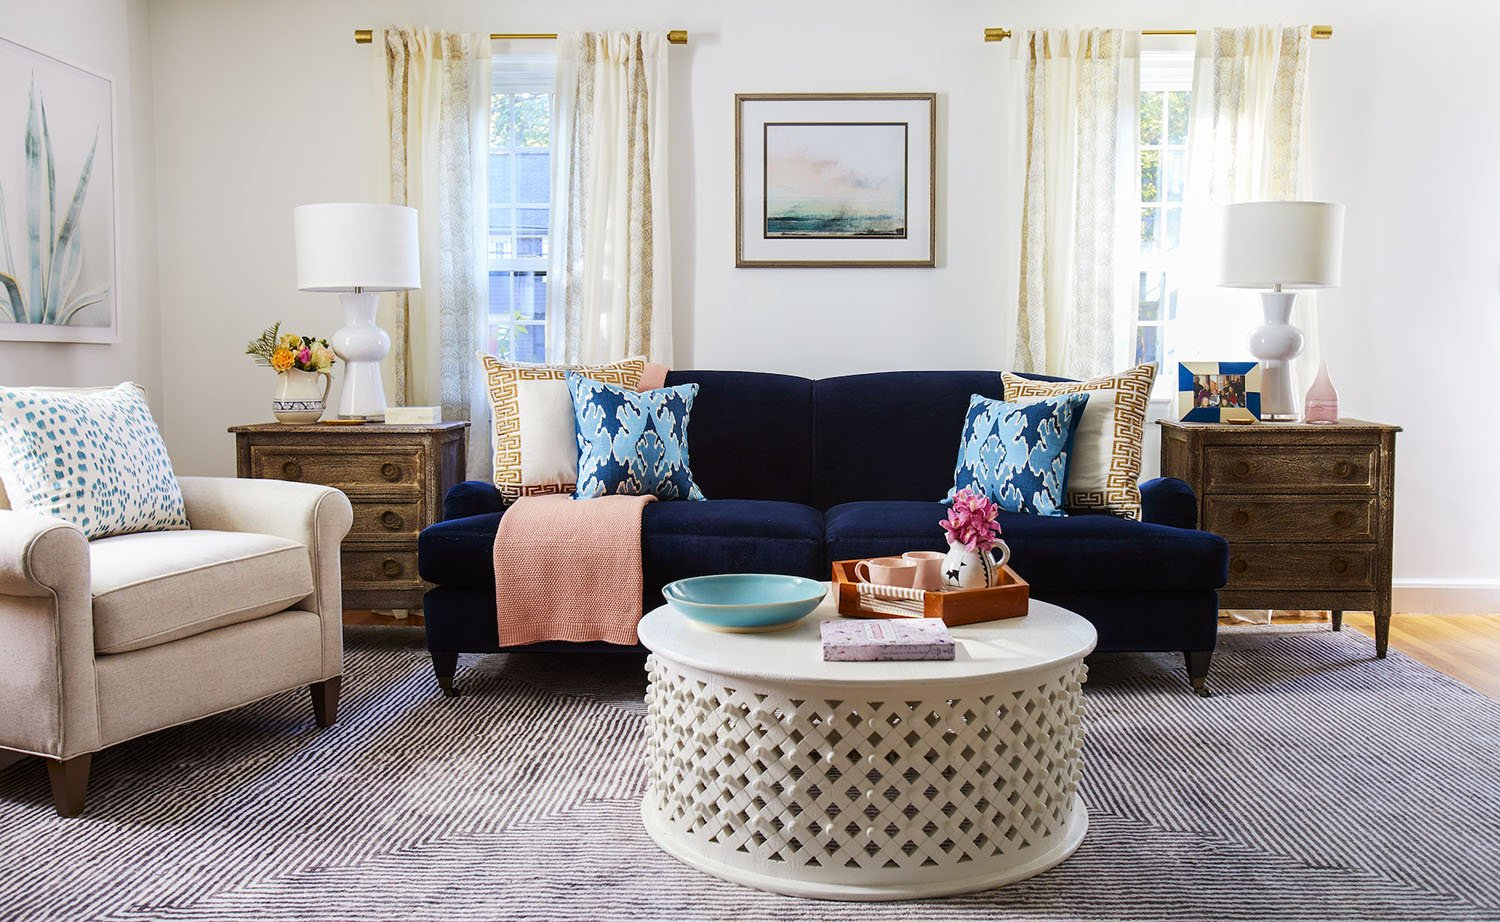 10 Easy Living Room Decorating Ideas for Every Style and Budget